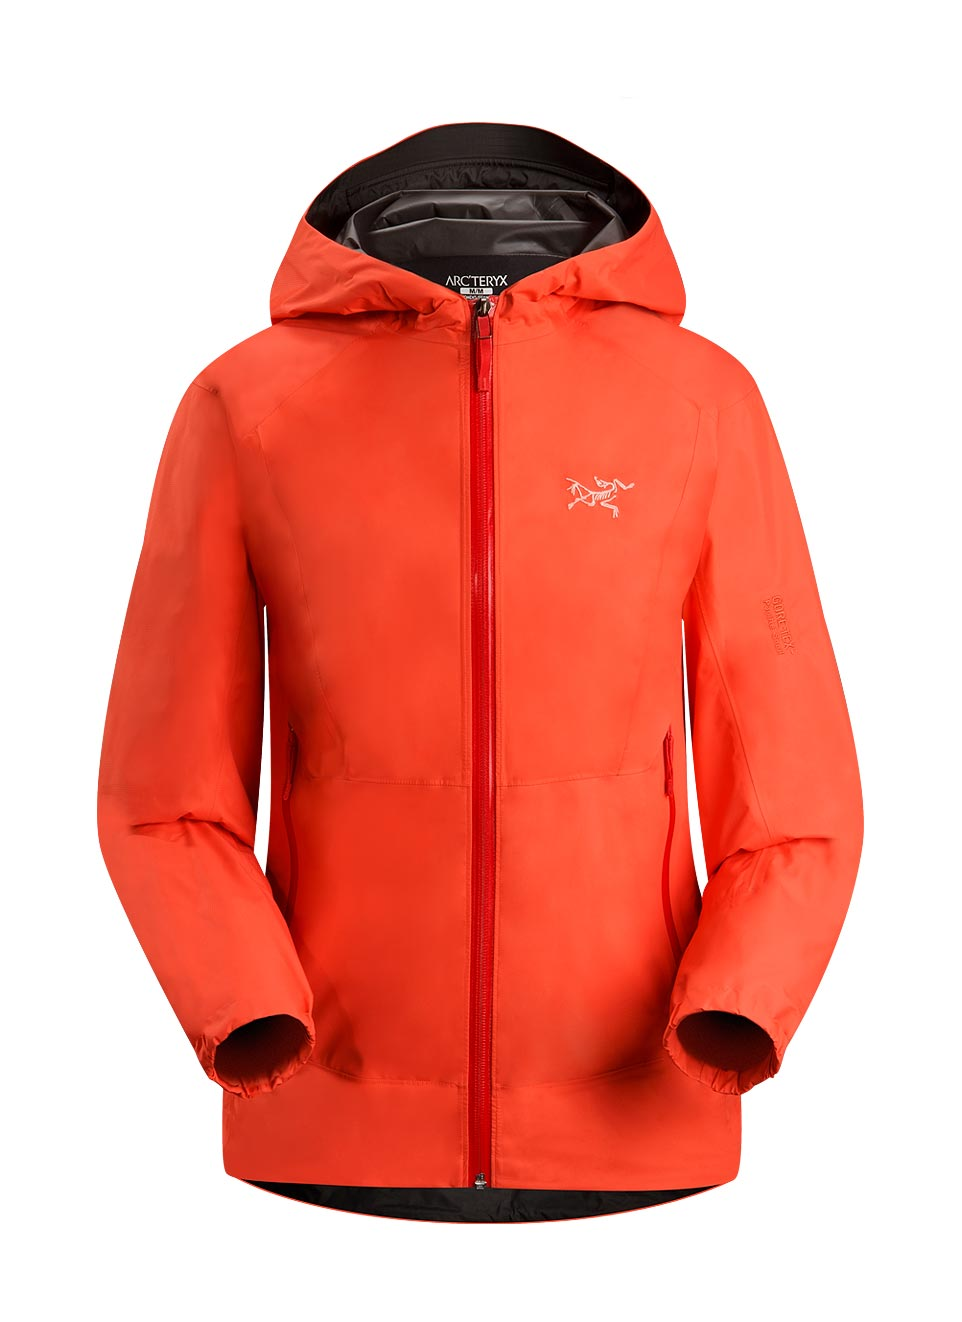 Arcteryx Autumn Coral Consort Jacket - New